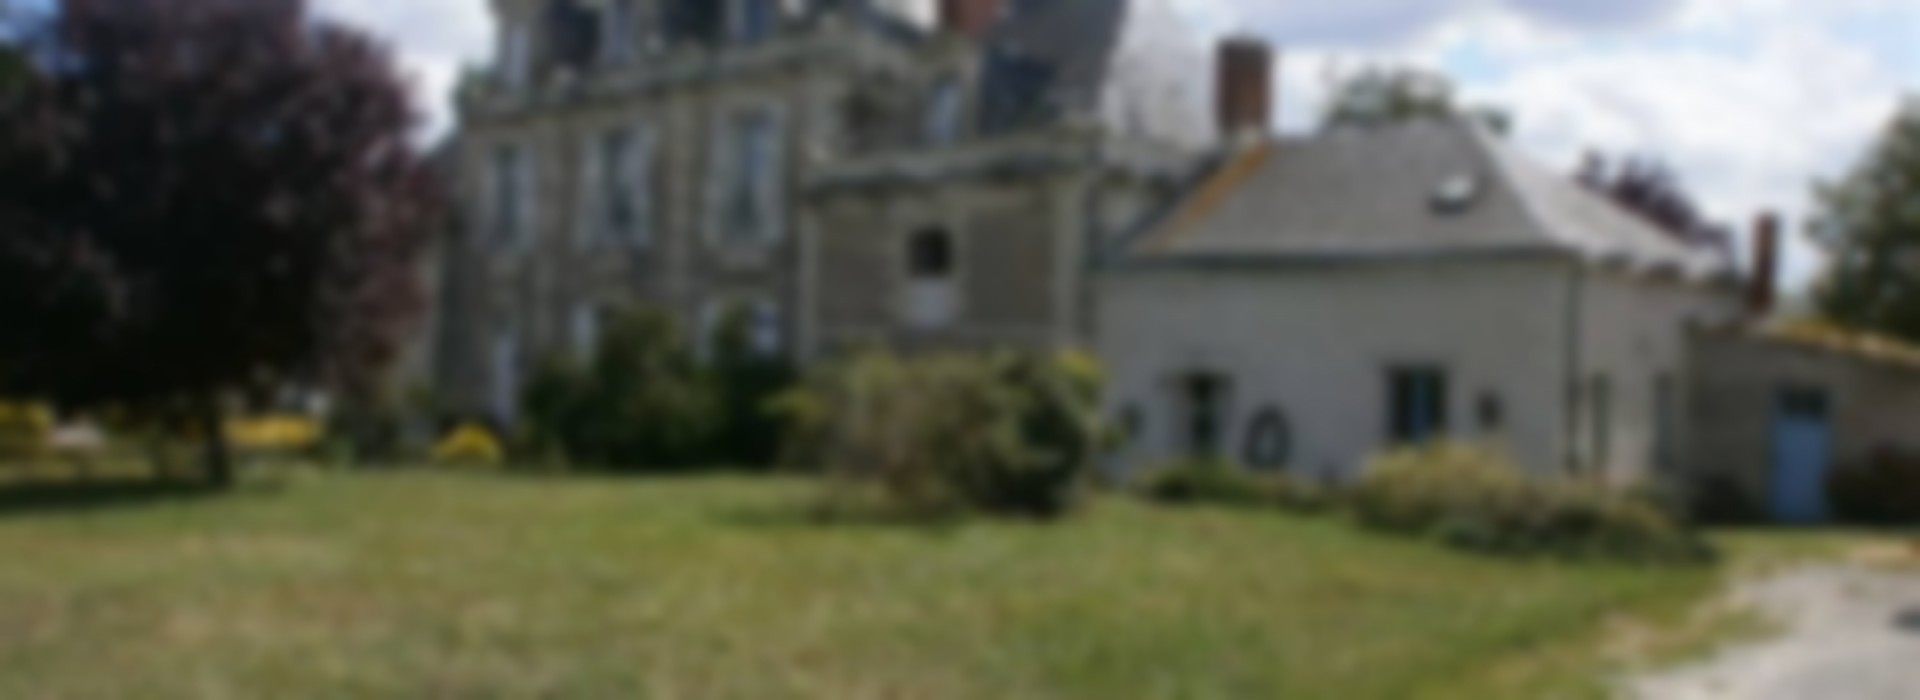 Chambres d 39 hotes loge broc g stezimmer frankreich pays for Chambre d hote xanton chassenon